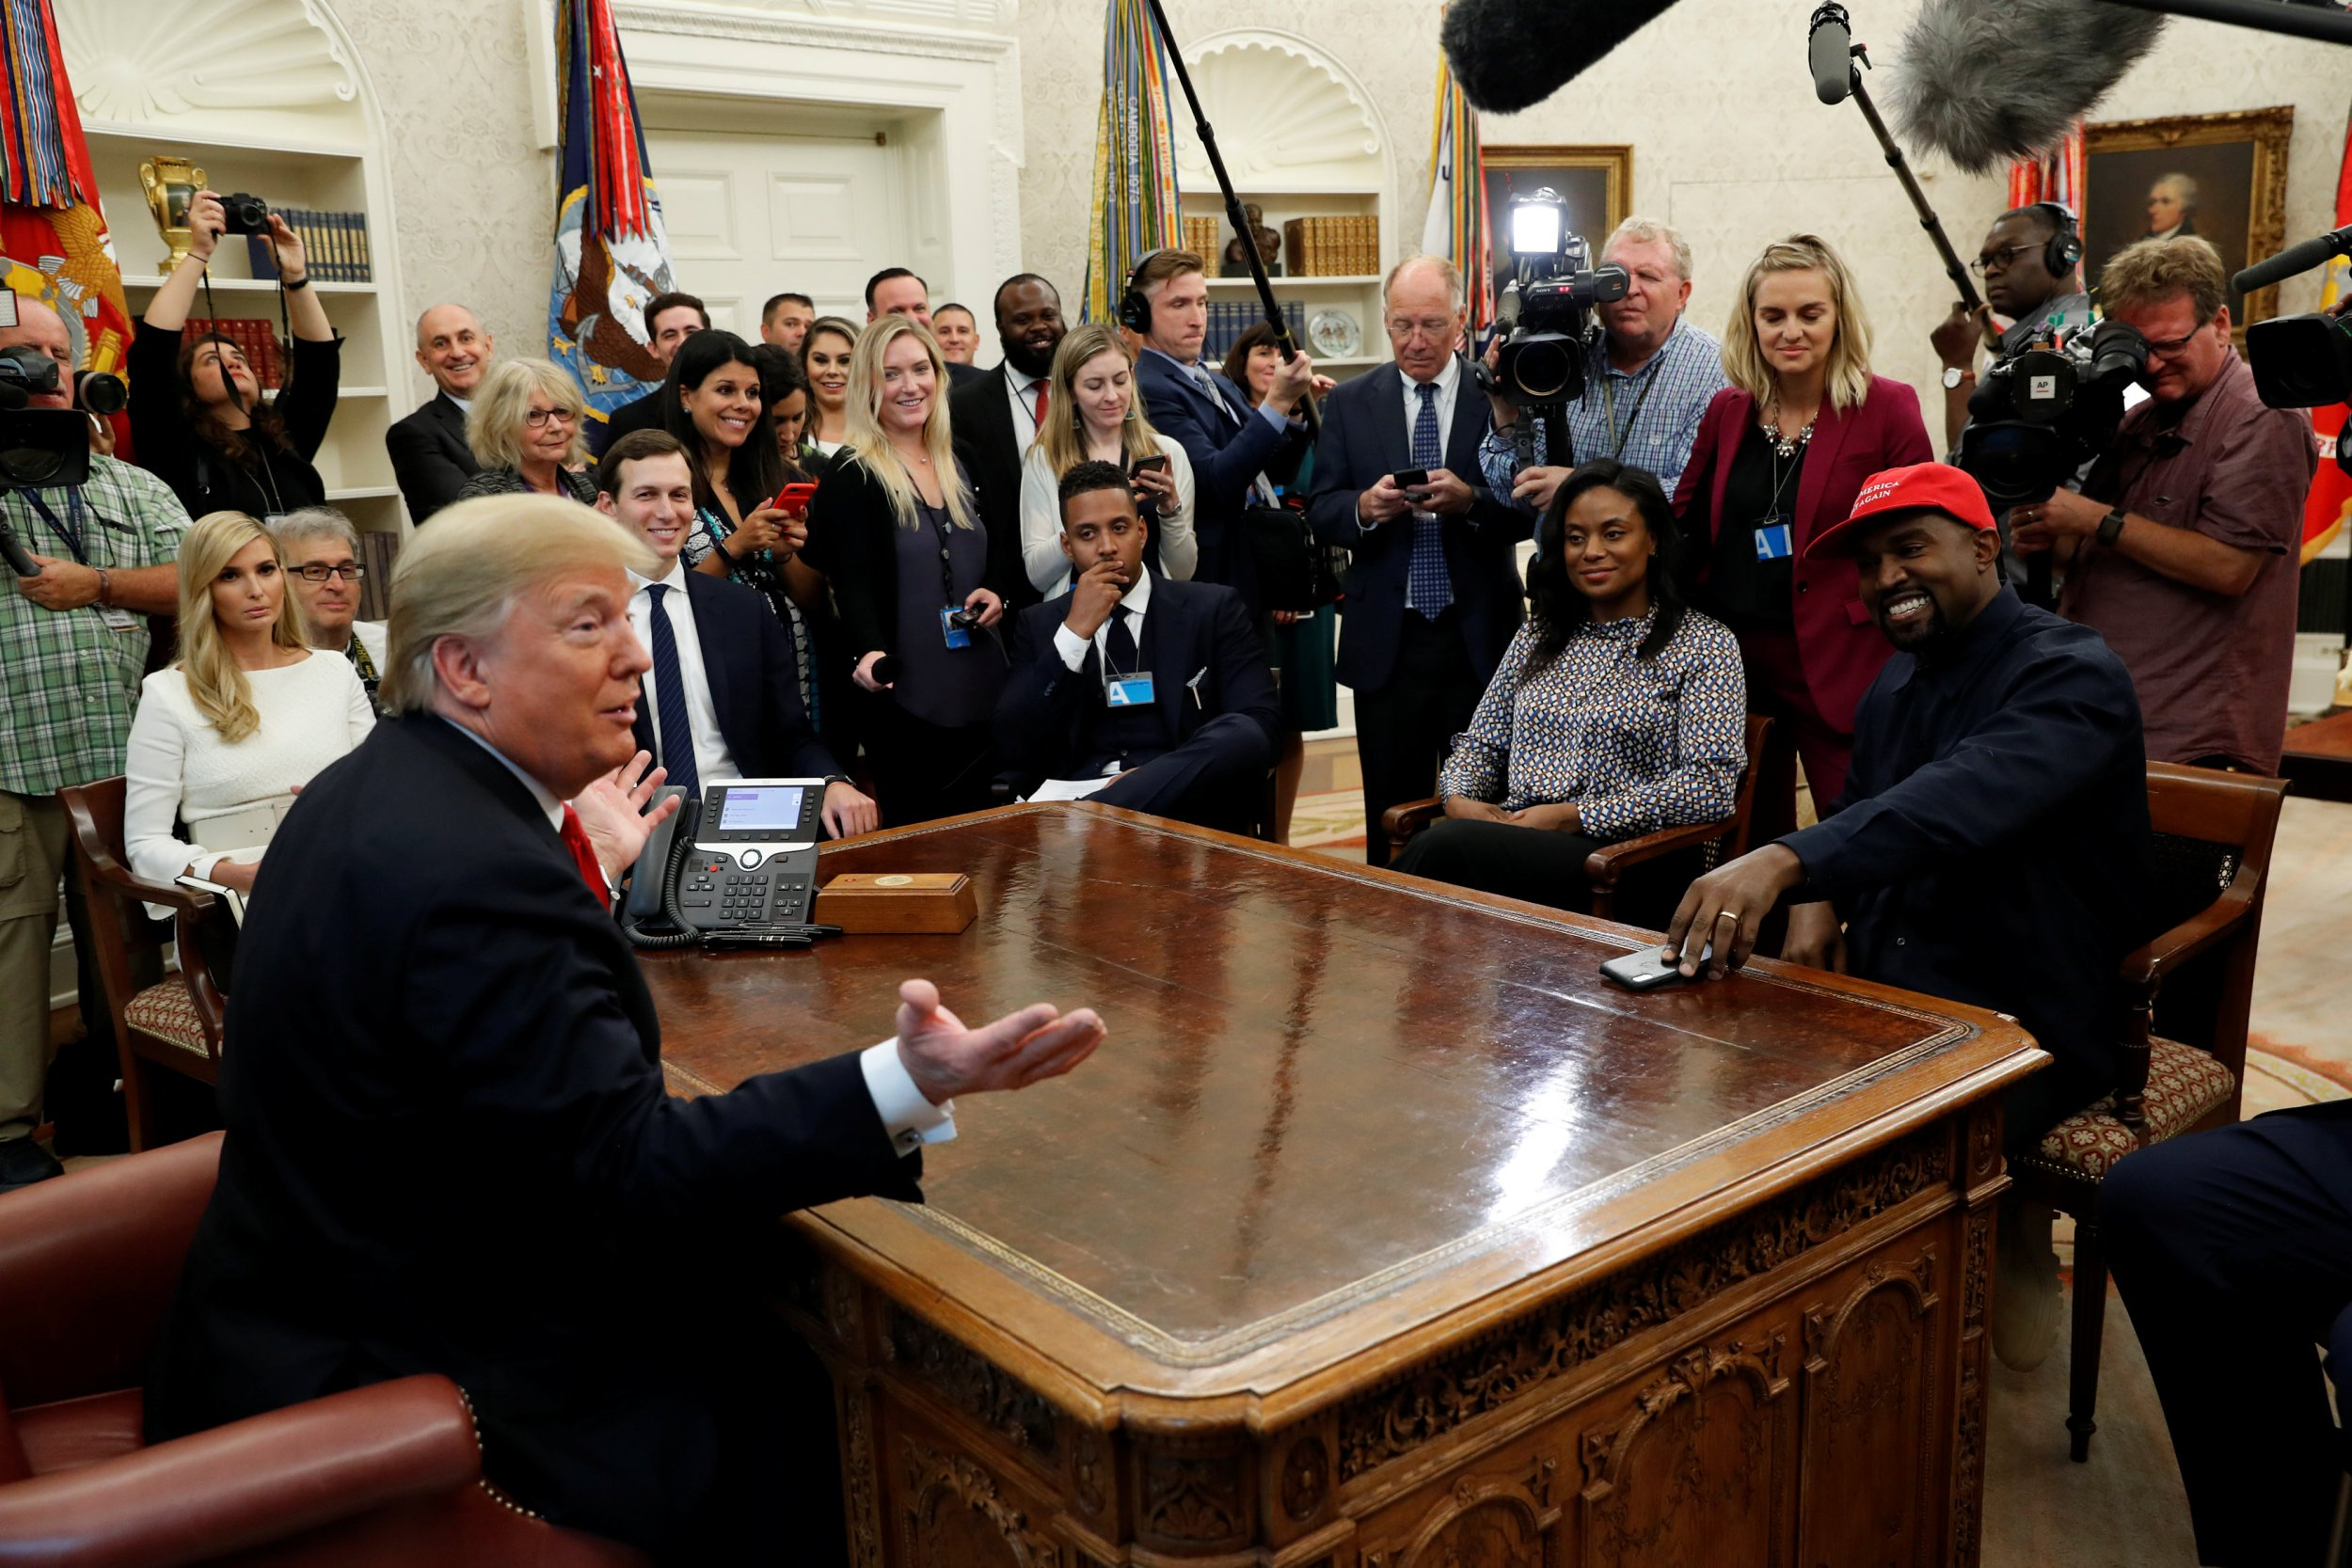 U.S. President Donald Trump speaks during a meeting with rapper Kanye West in the Oval Office at the White House in Washington, U.S., October 11, 2018. REUTERS/Kevin Lamarque